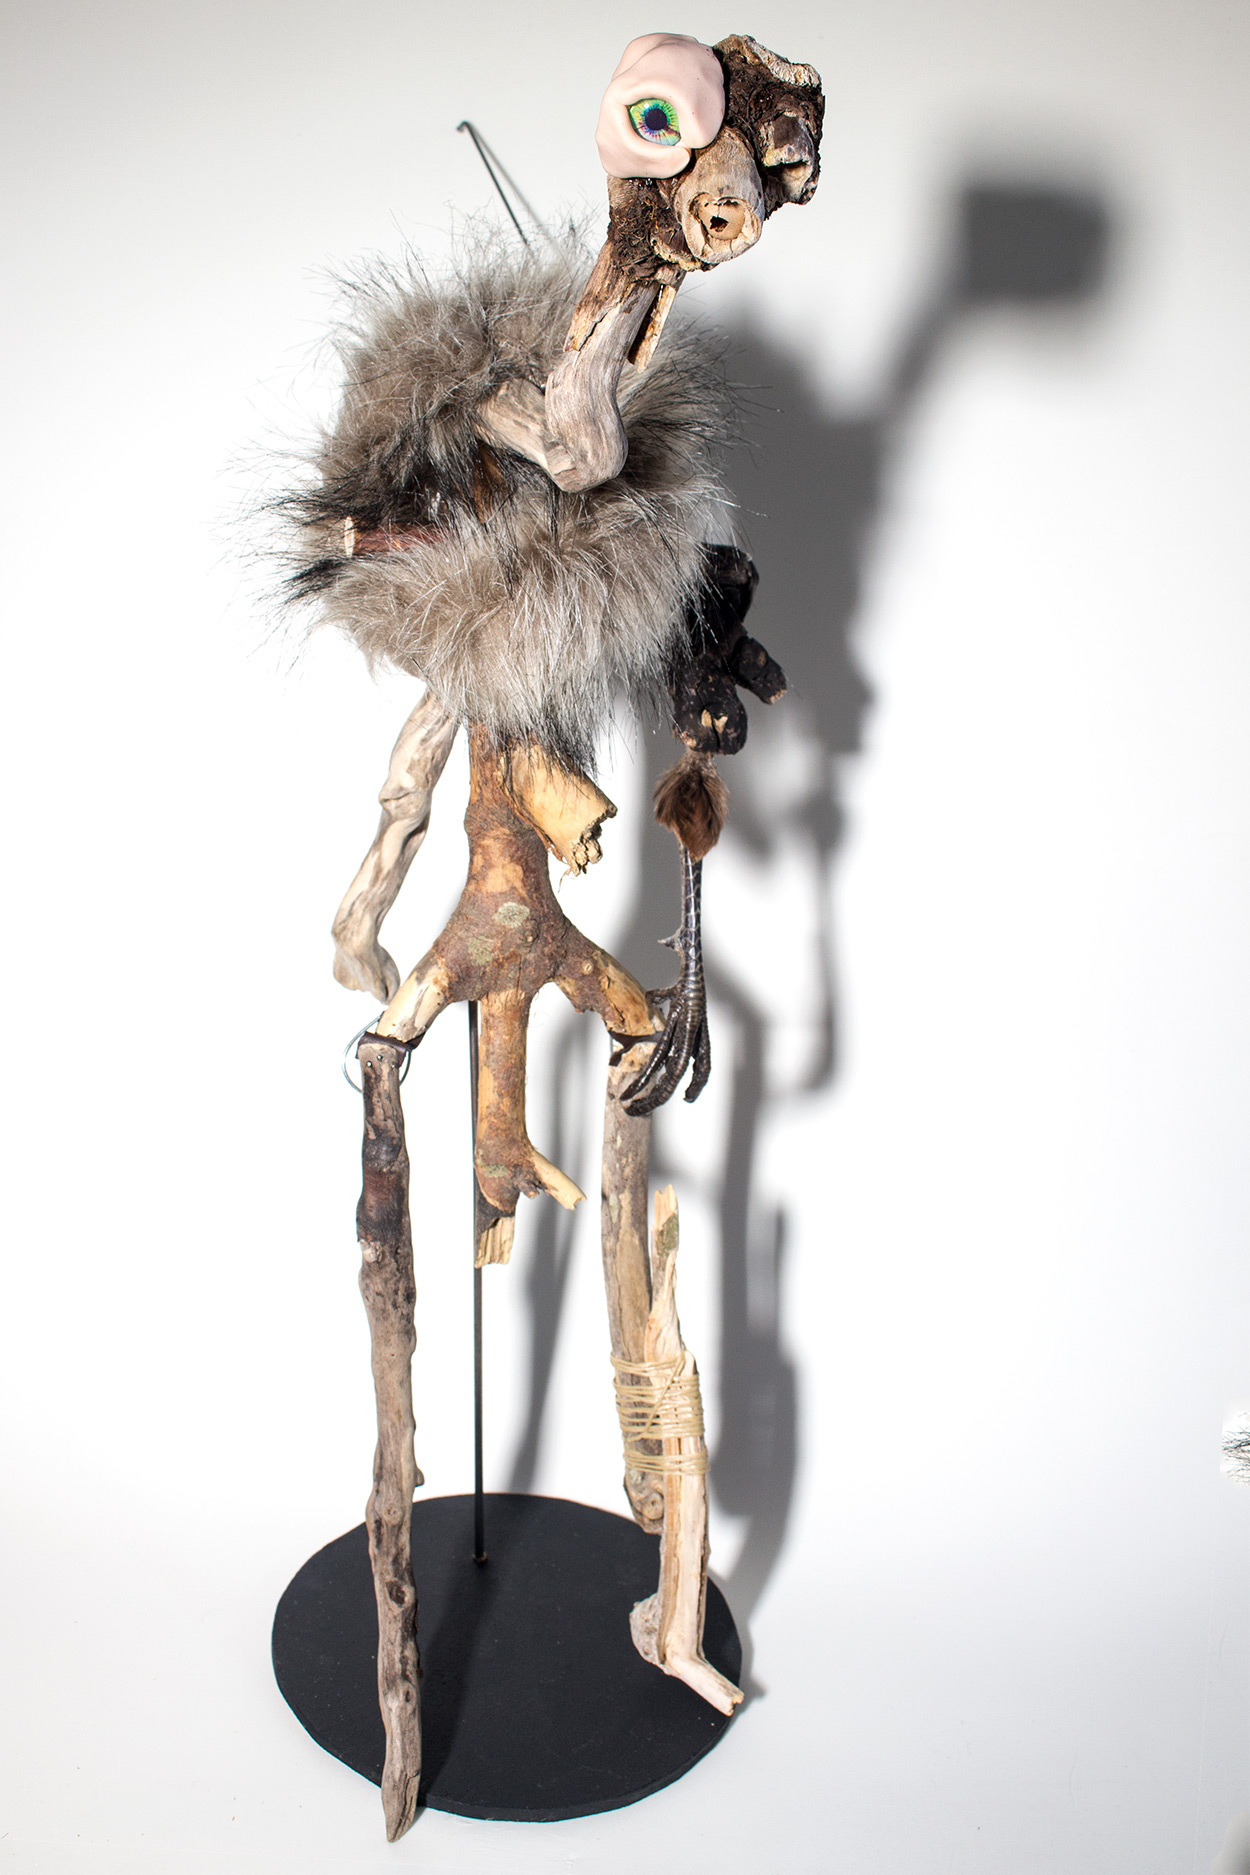 An artist's puppet made from driftwood and taxidermy